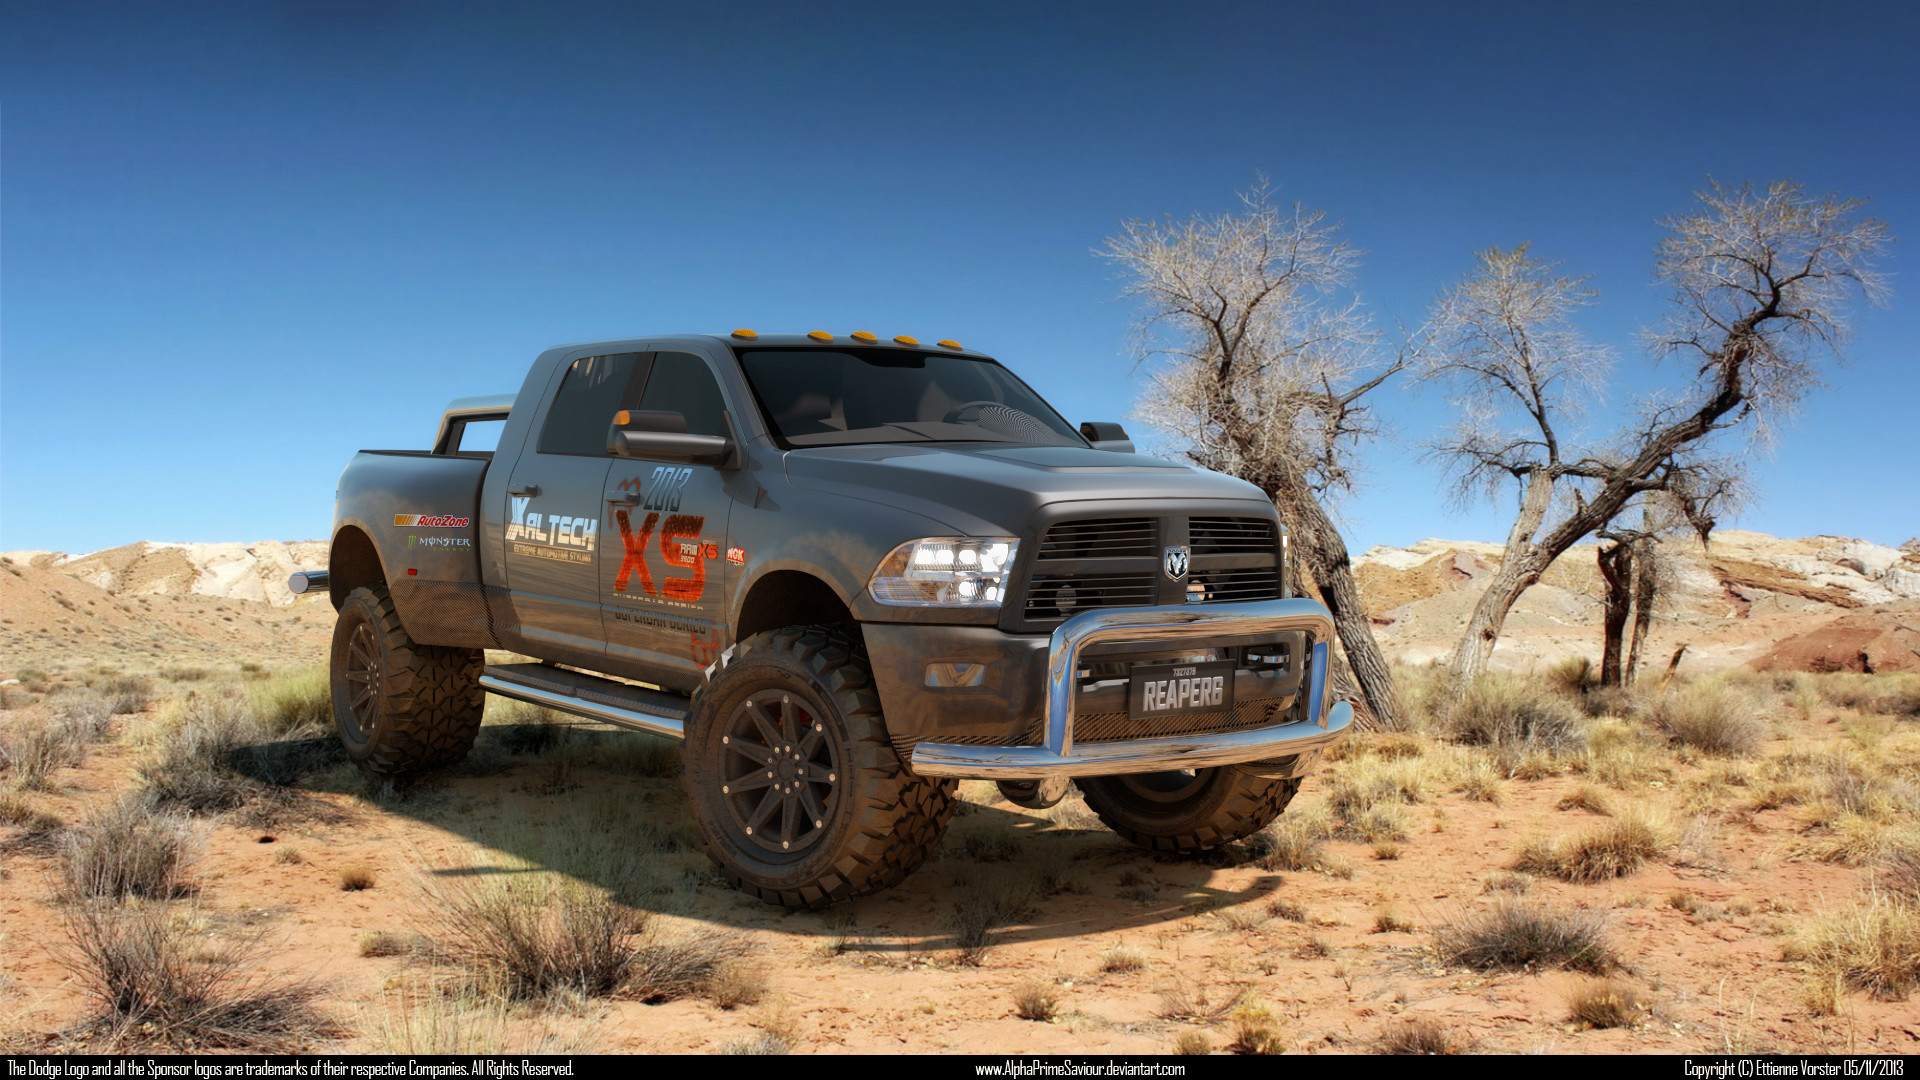 1920x1080 dodge-ram-3500-lifted-blue-wallpaper-7.jpg (